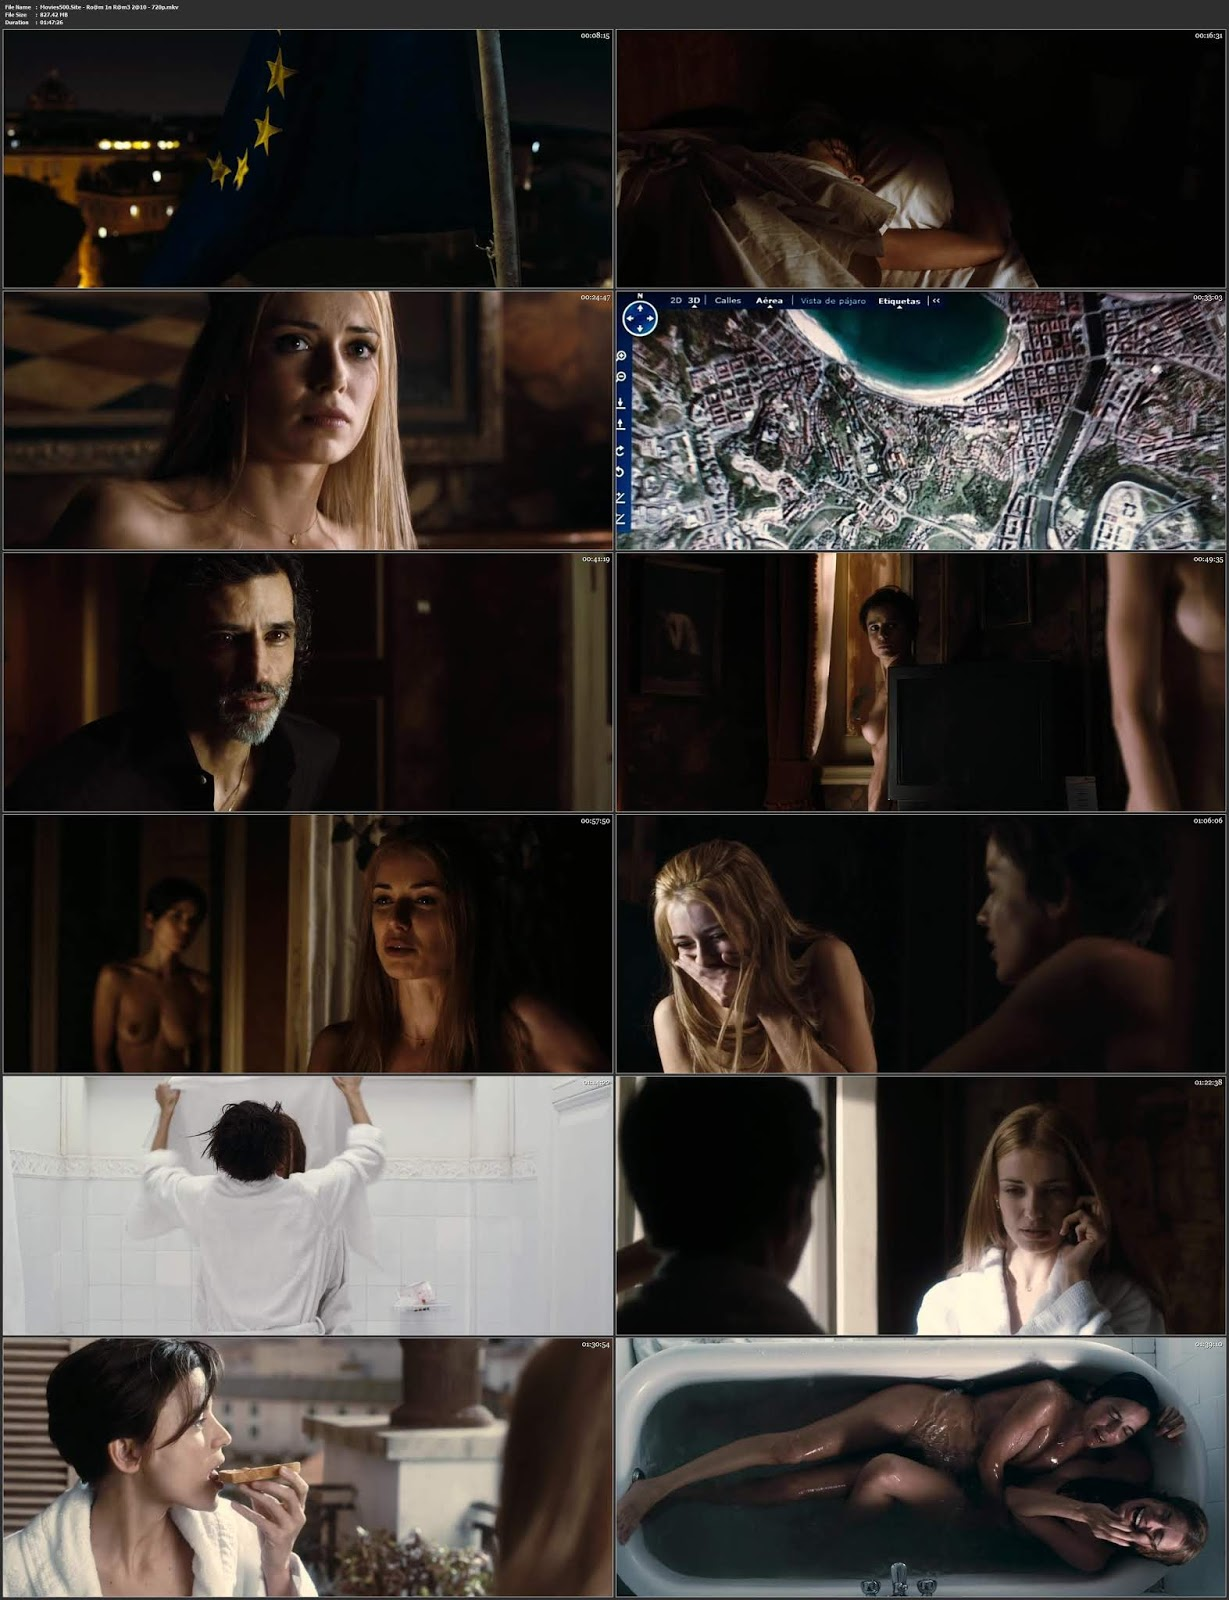 18+ Room in Rome 2010 English Full Movie BluRay 720p